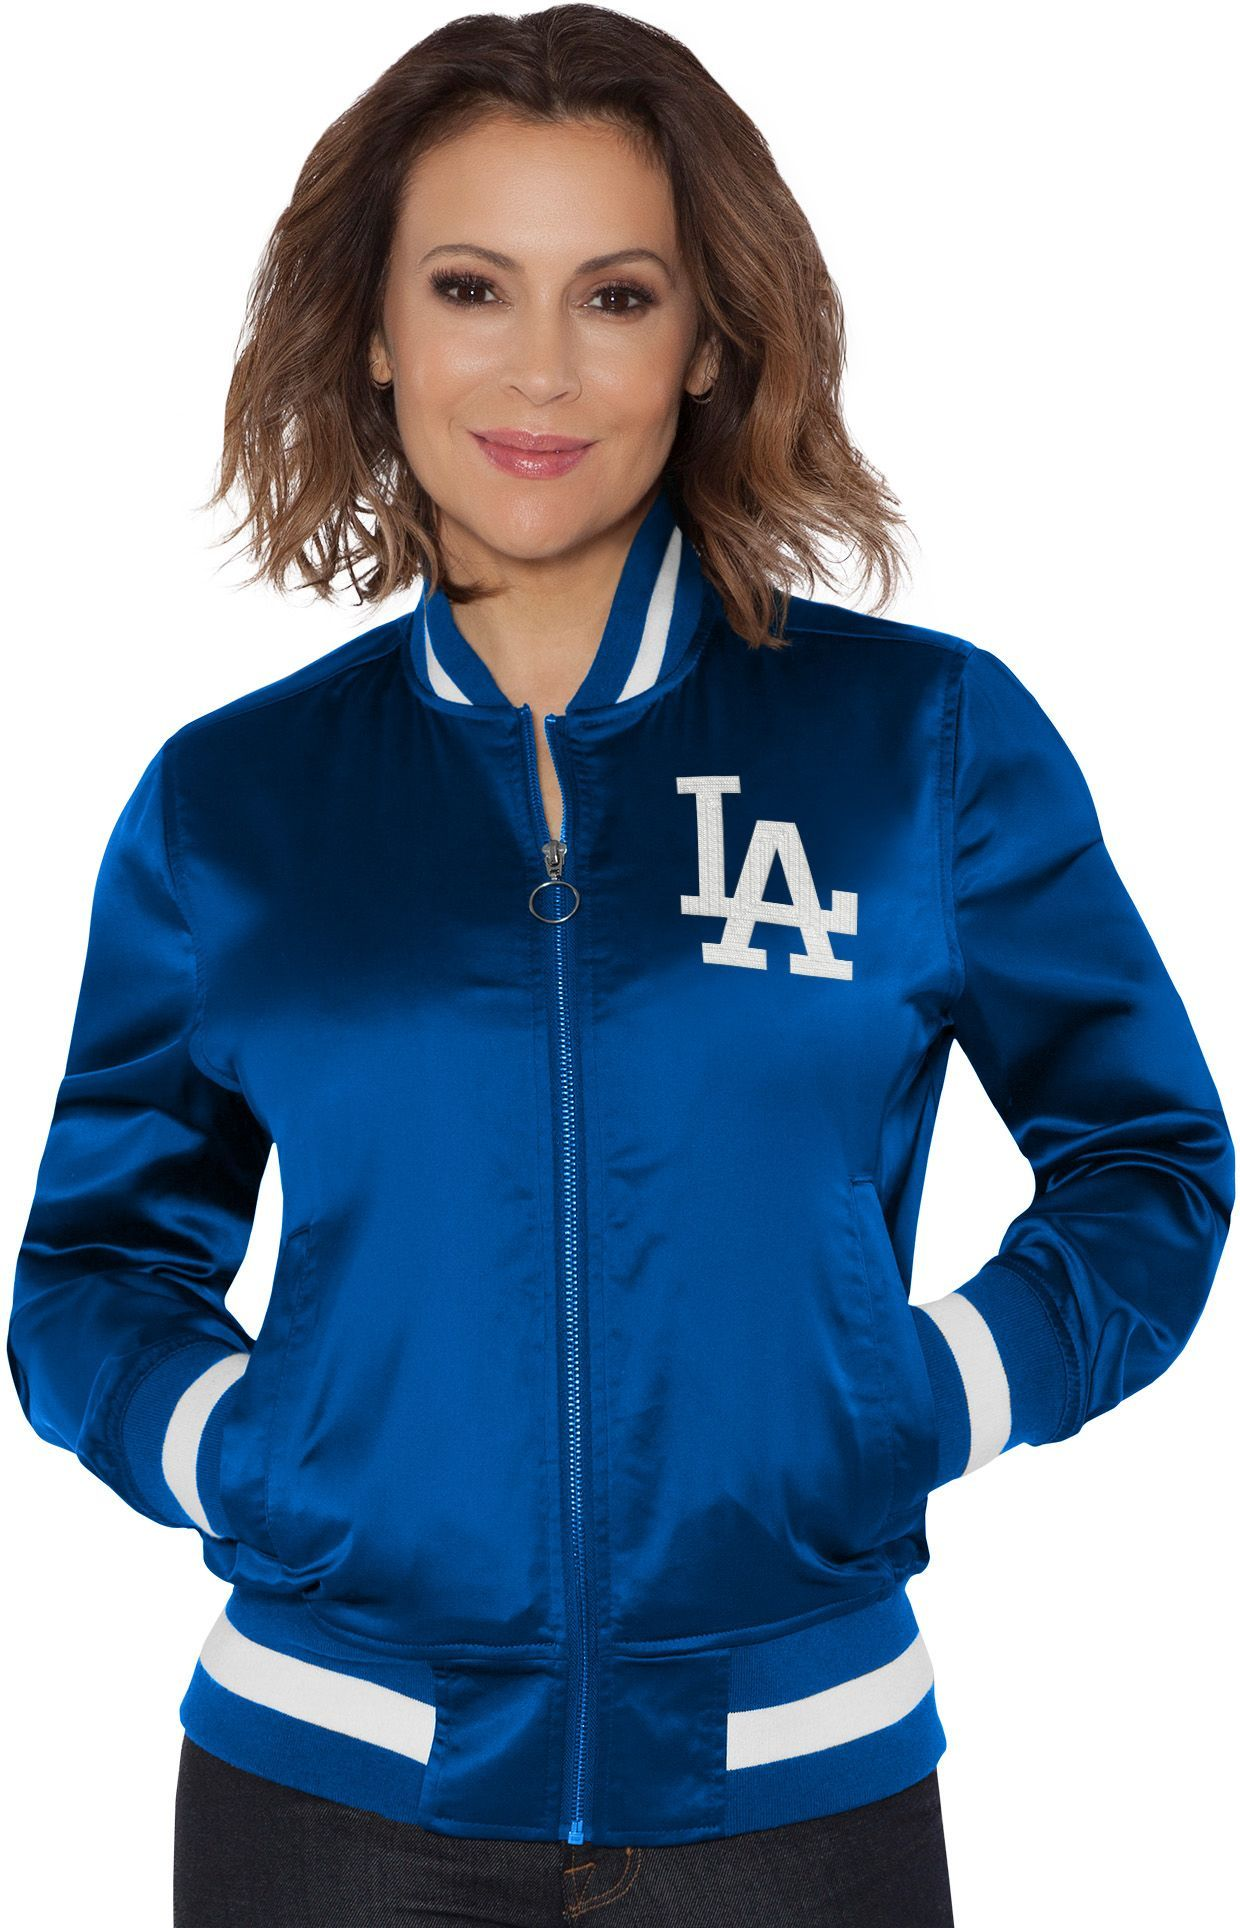 e3e8c1251 Touch by Alyssa Milano Women's Los Angeles Dodgers Bomber Jacket | DICK'S  Sporting GoodsProposition 65 warning iconProposition 65 warning icon